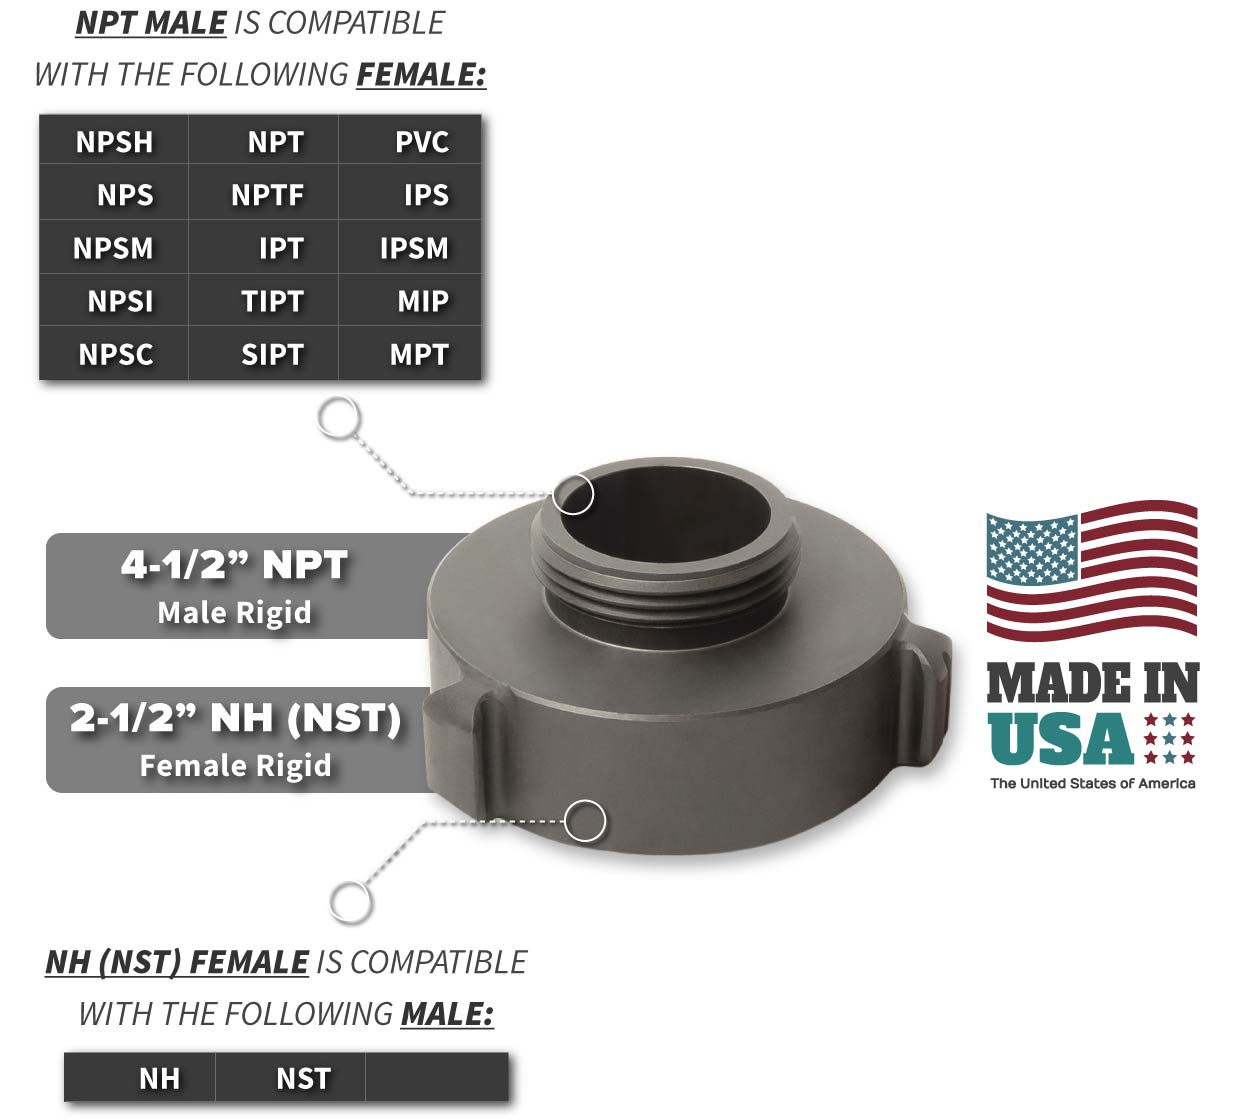 2.5 Inch NH-NST Female x 4.5 Inch NPT Male Compatibility Thread Chart